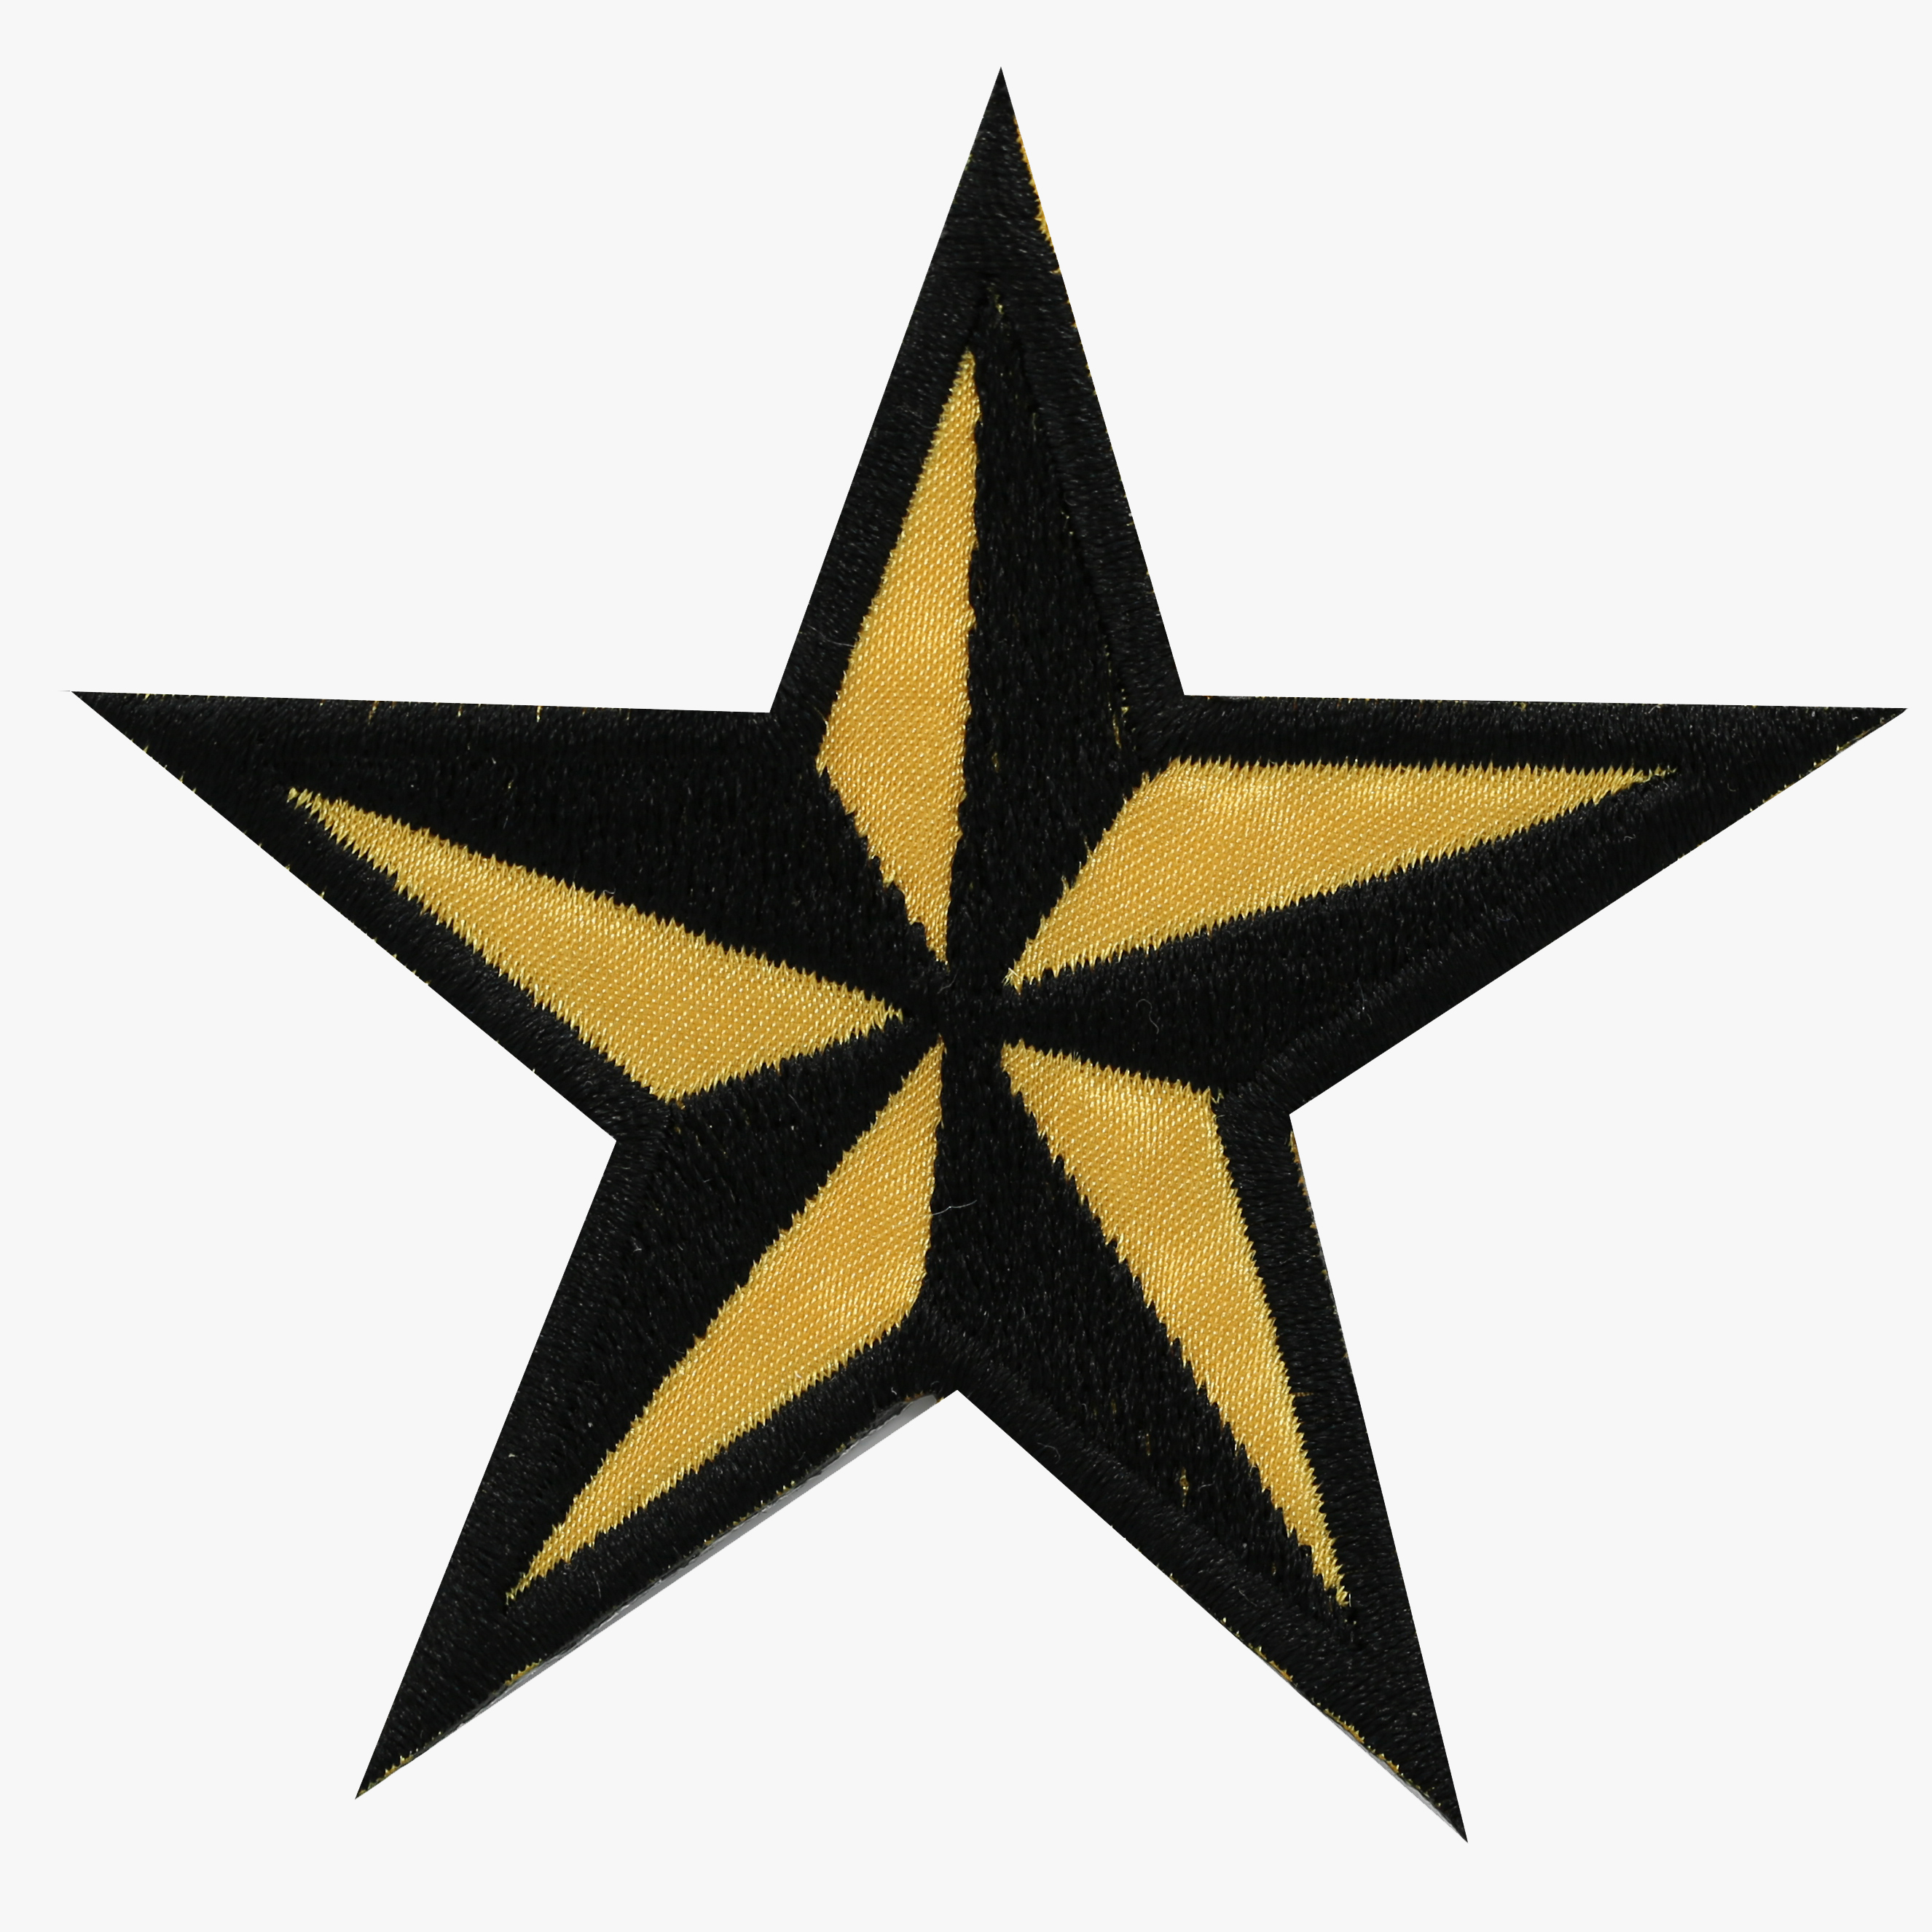 New NAUTICAL STAR Embroidered PATCH